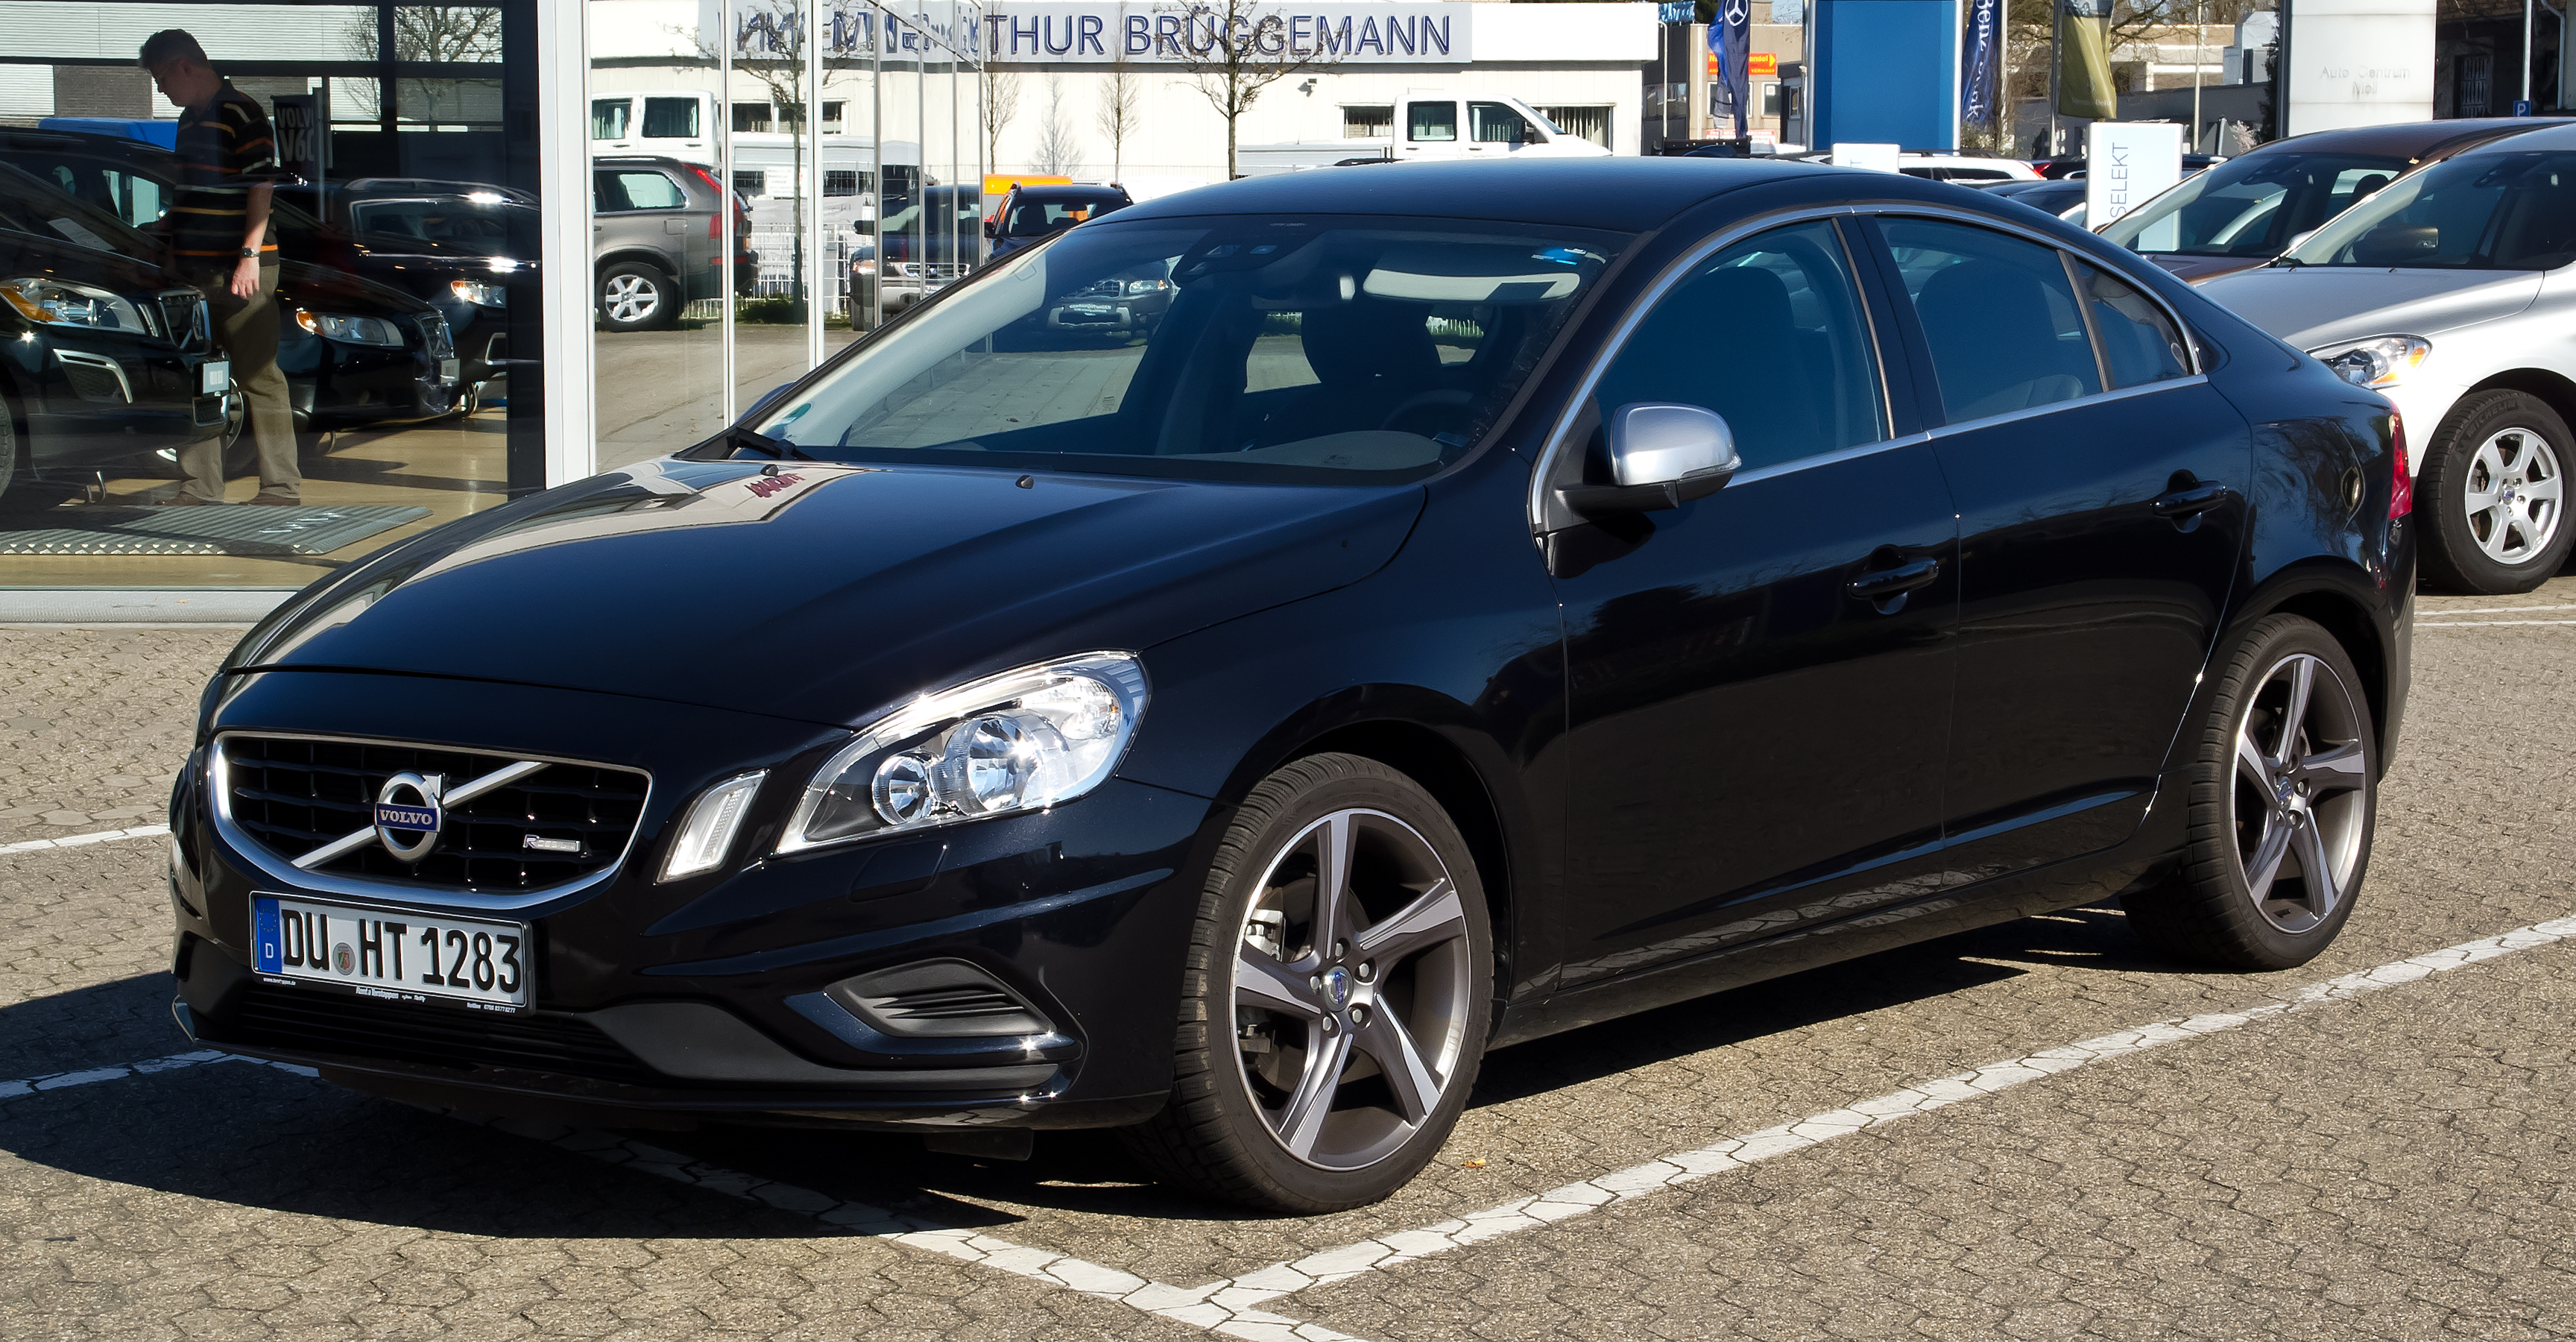 volvo s60 pictures #3